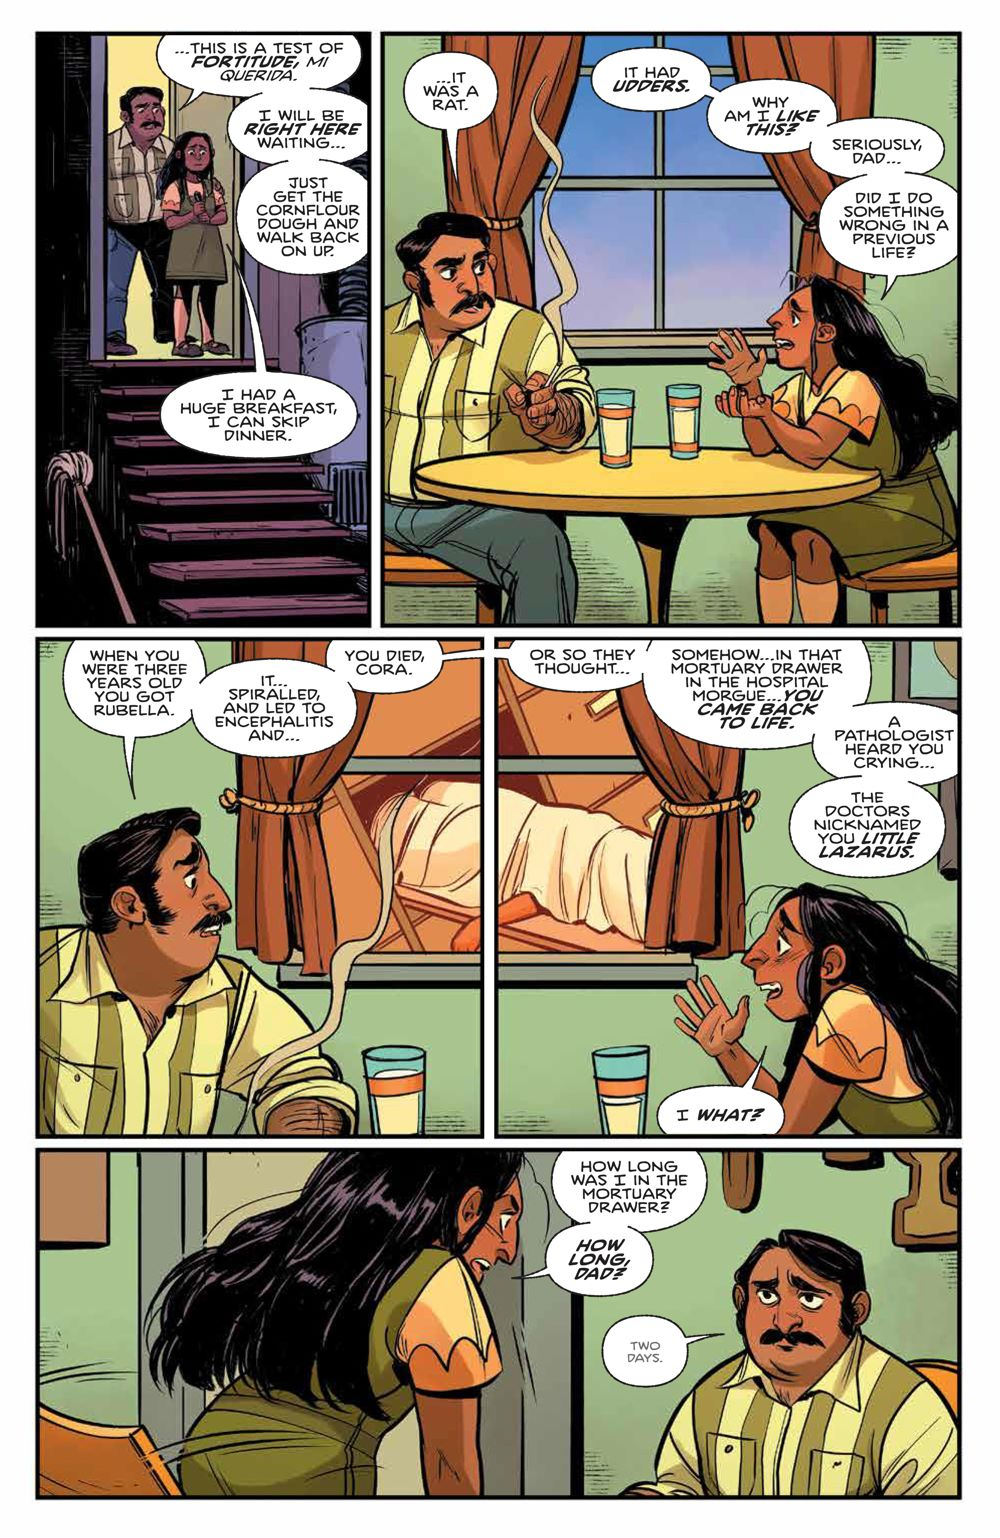 ProctorValleyRoad_005_PRESS_5 ComicList Previews: PROCTOR VALLEY ROAD #5 (OF 5)